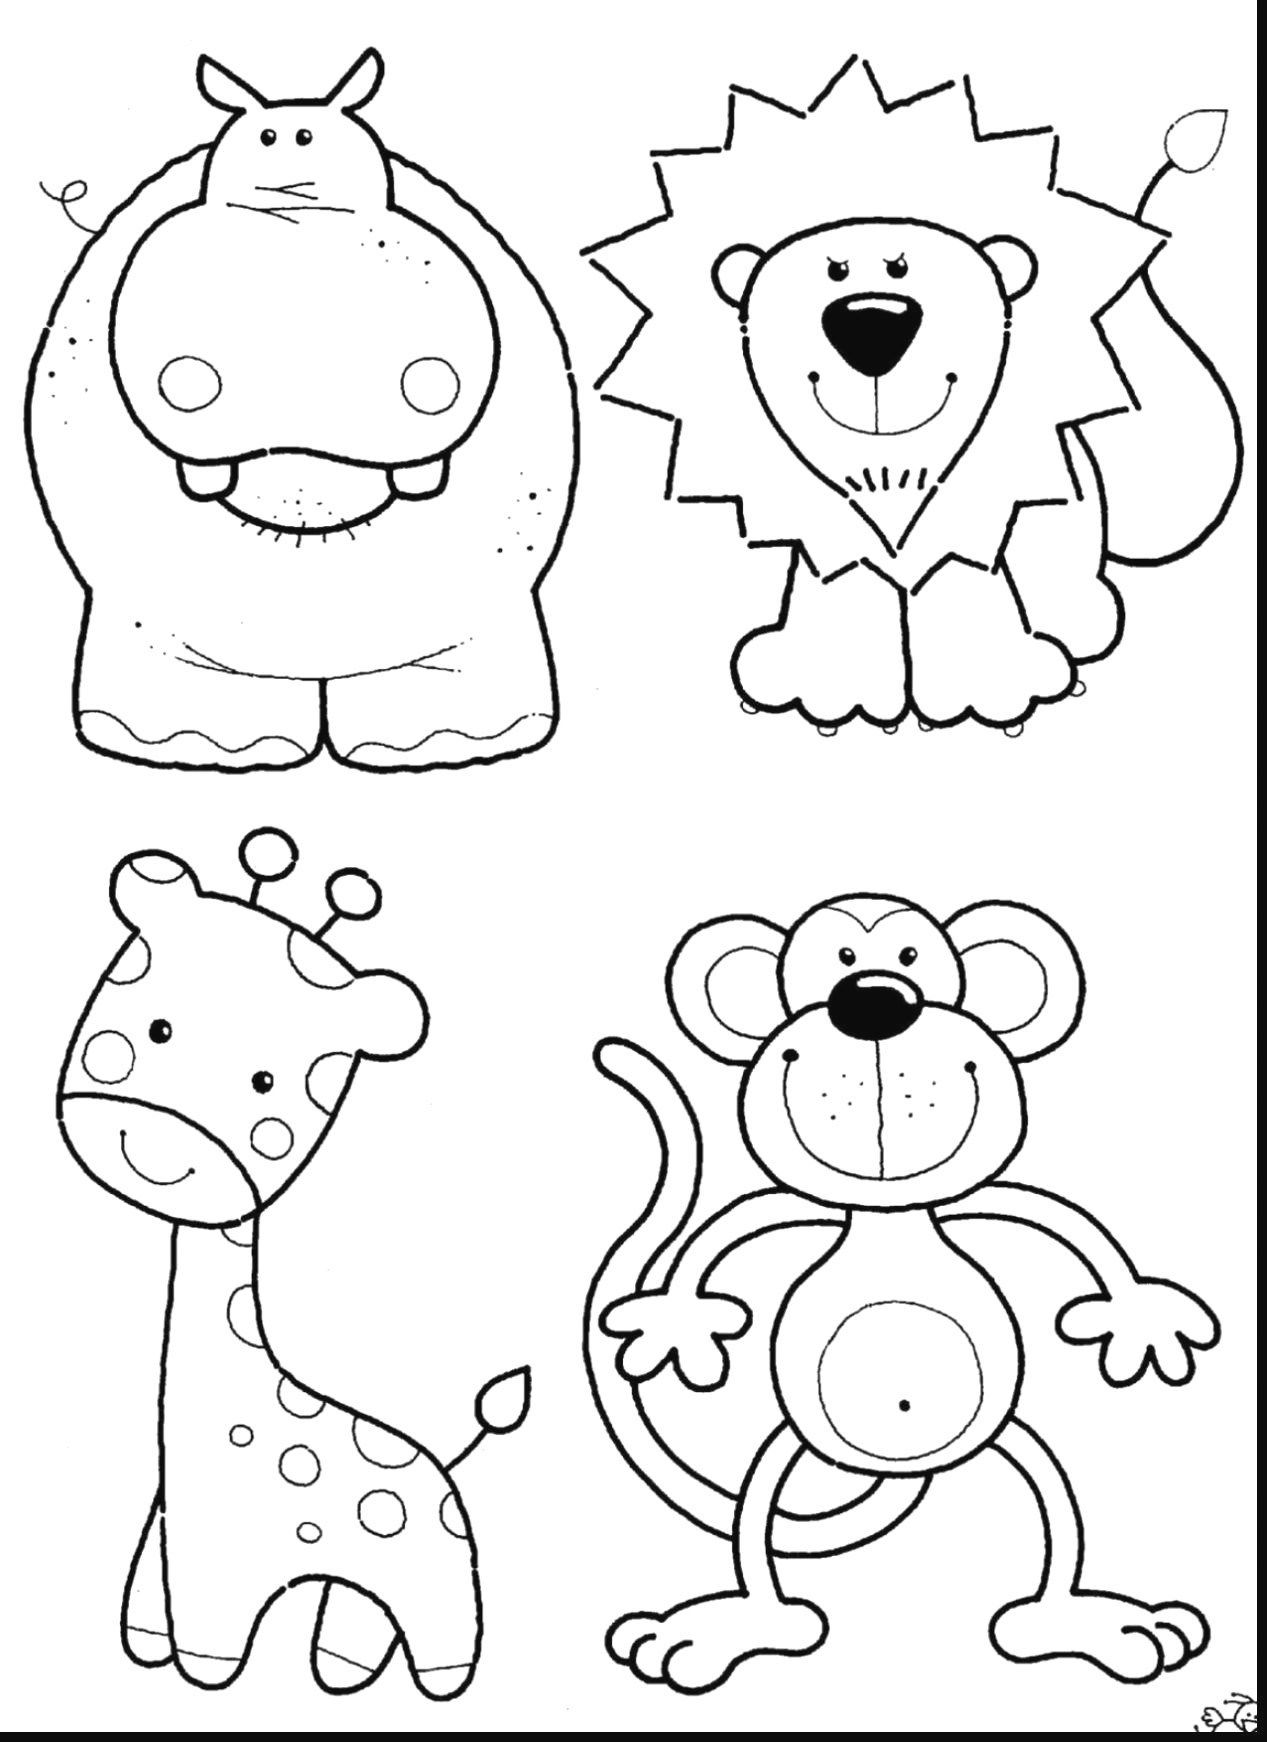 coloring cartoon zoo childrens animal coloring pages fresh zoo animals coloring coloring cartoon zoo